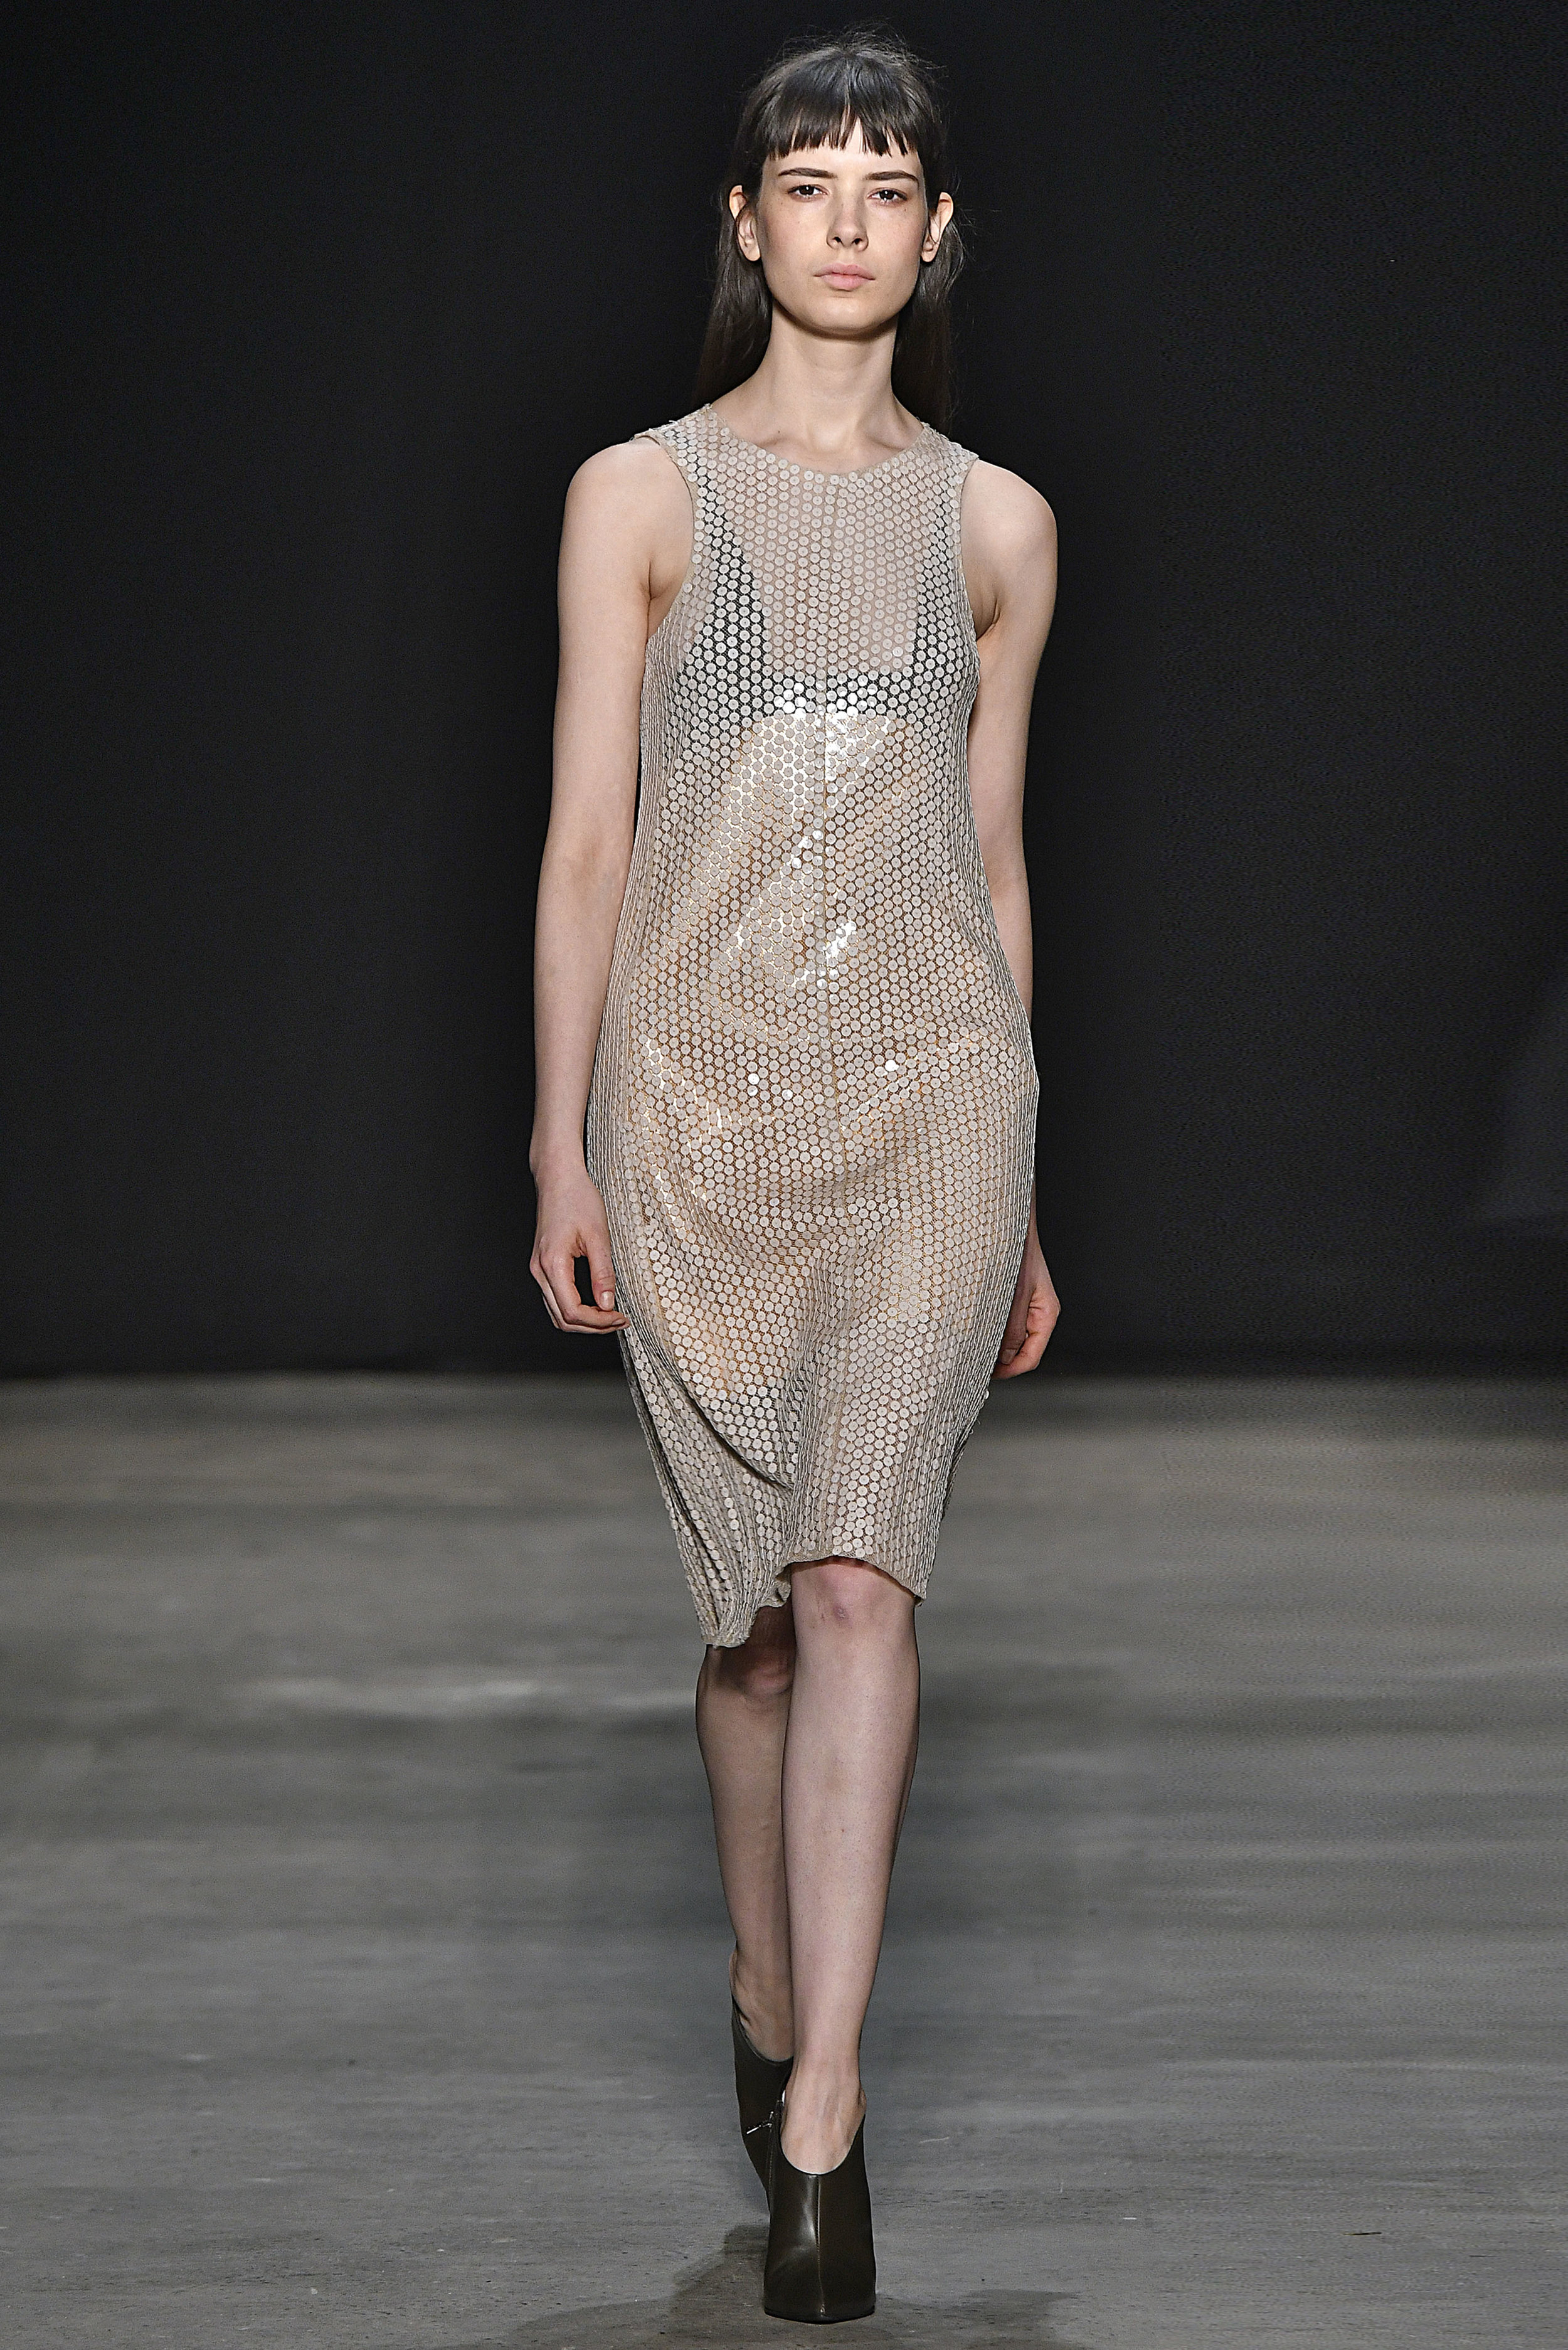 Narciso Rodriguez Fall 2017 collection. Nude hammered paillette dress.